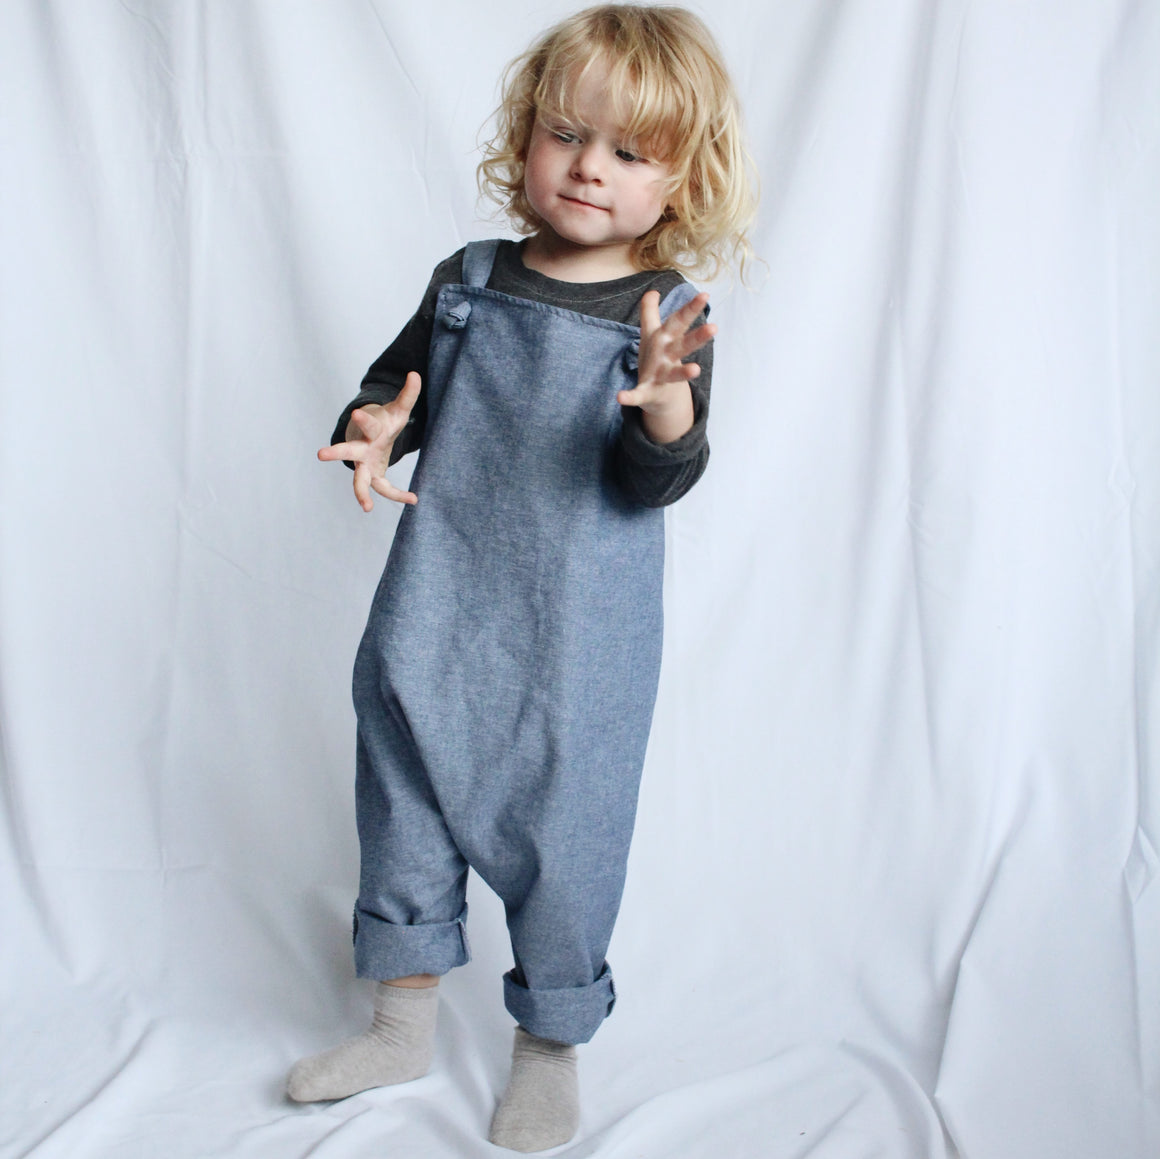 Sophie + Co/Baba of Mine Collab - Chambray Denim Dungarees